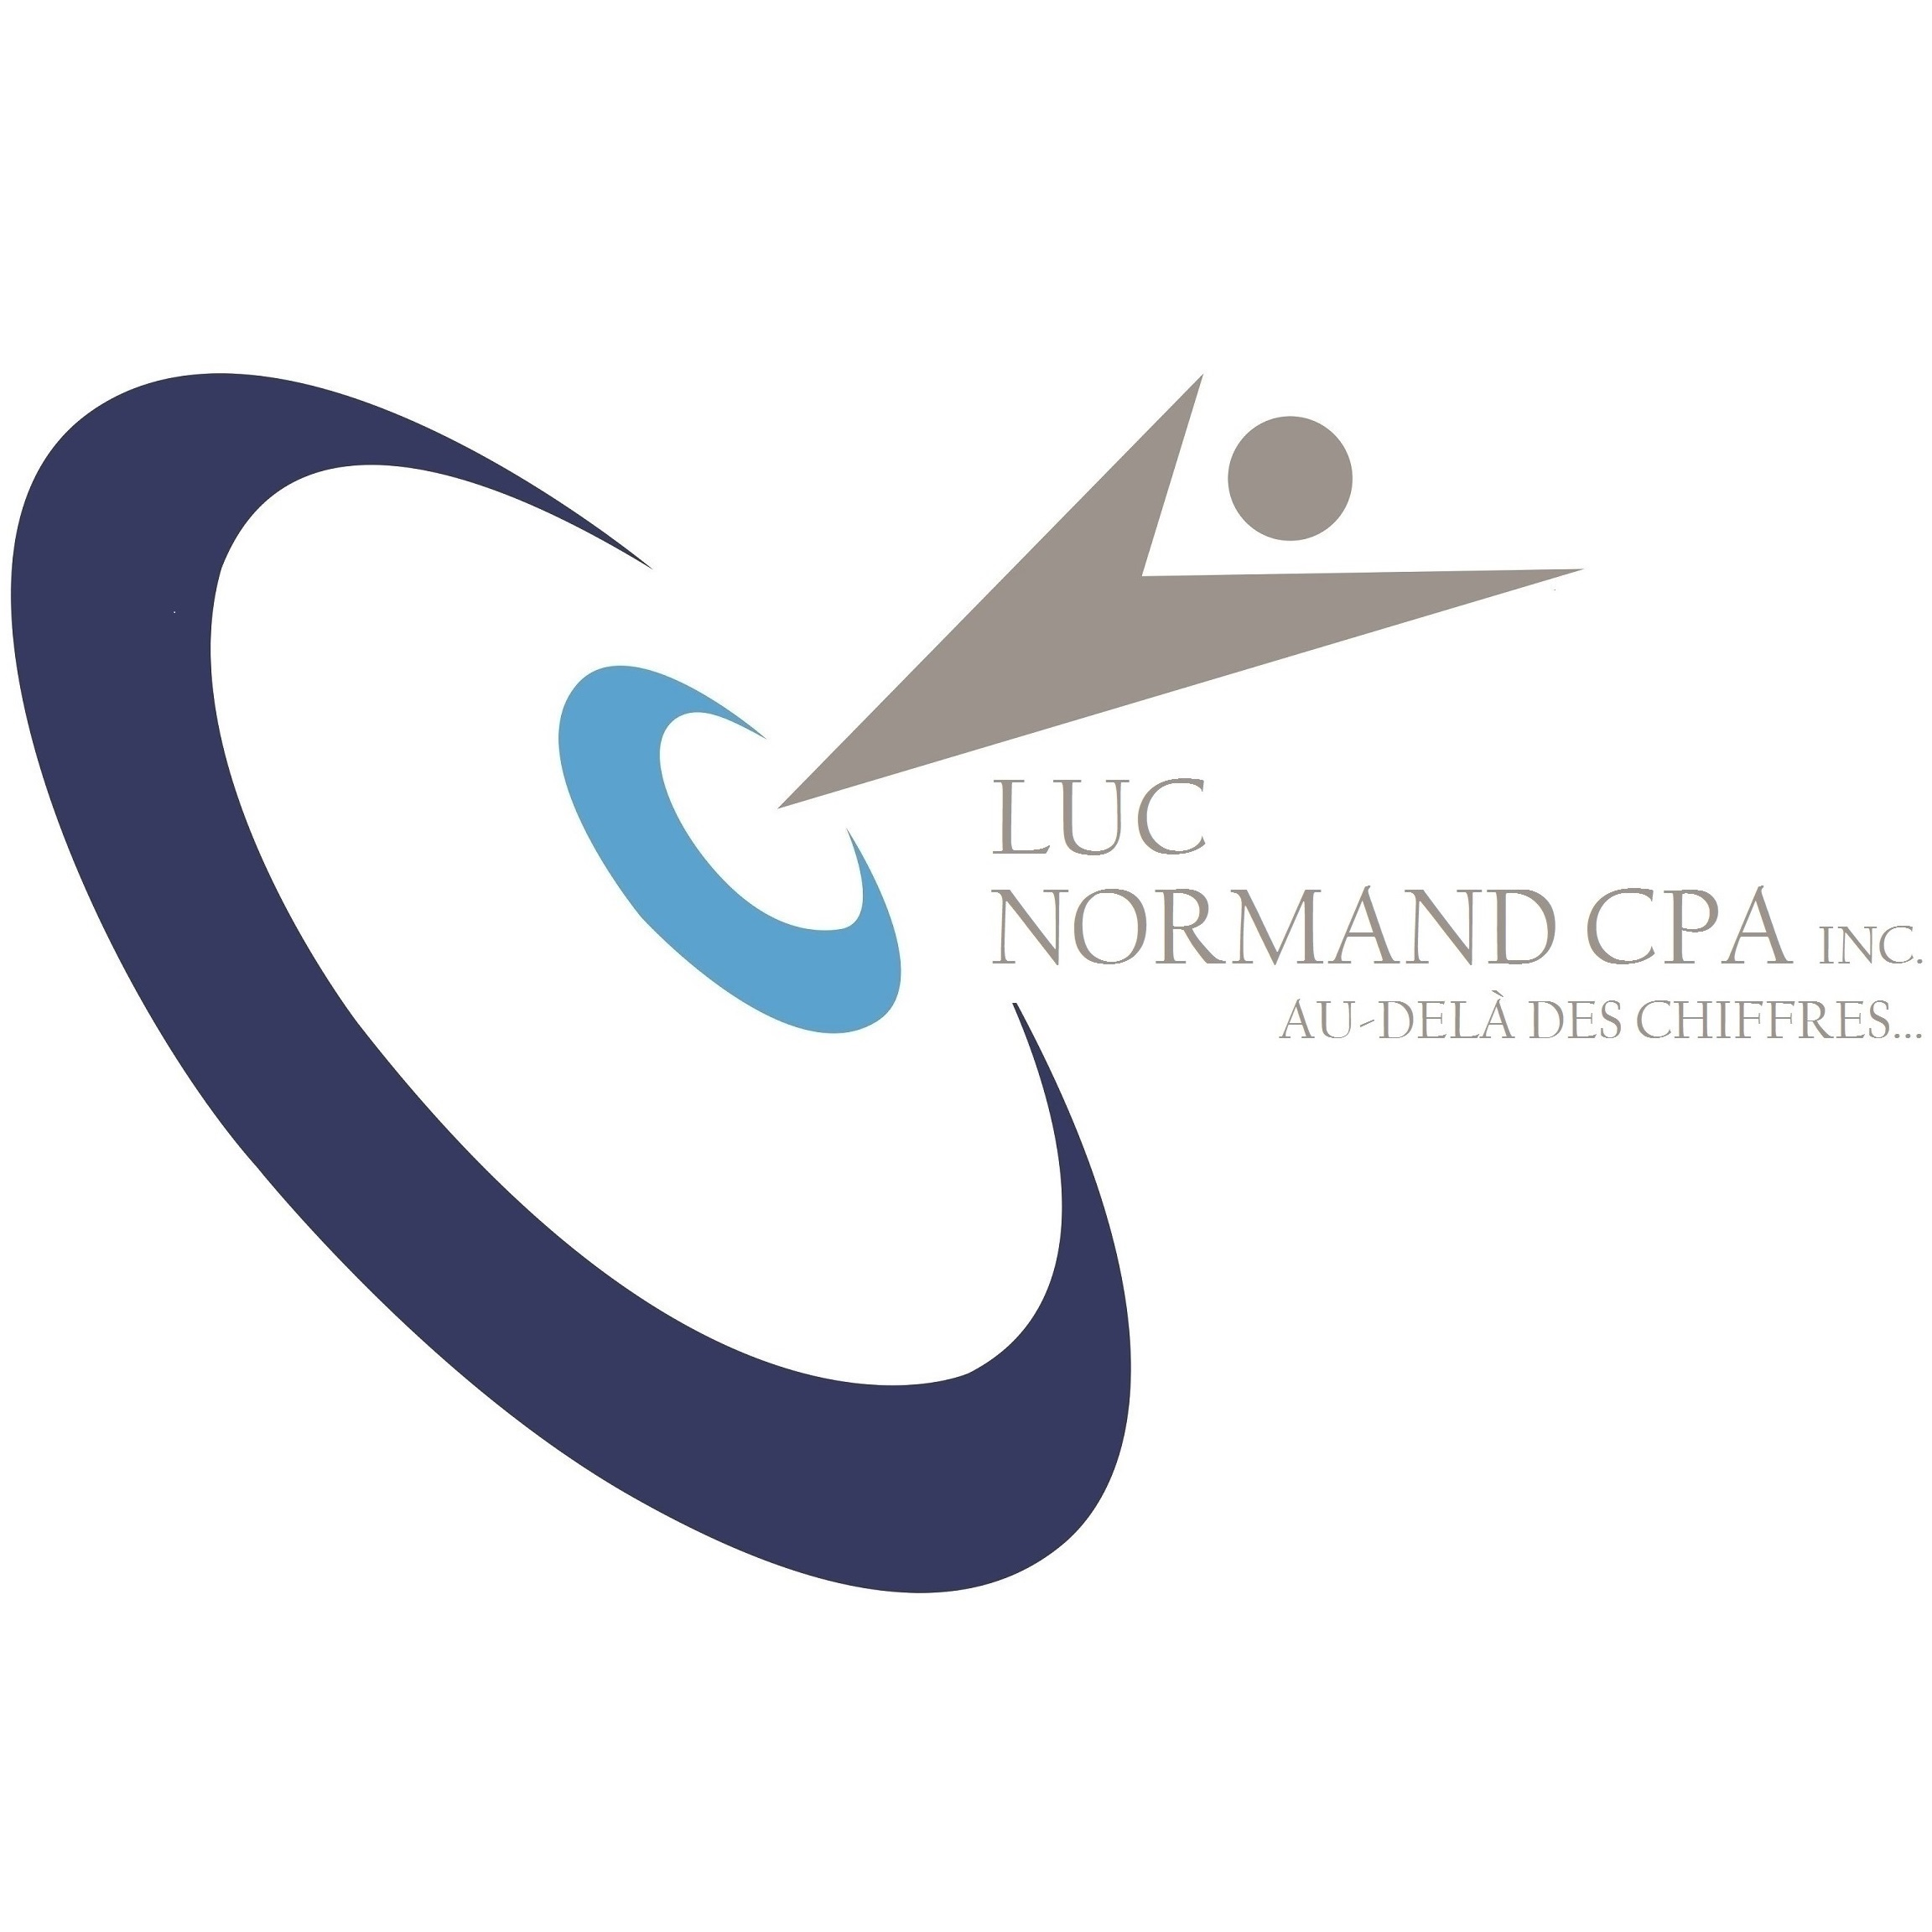 Luc Normand CPA Inc.